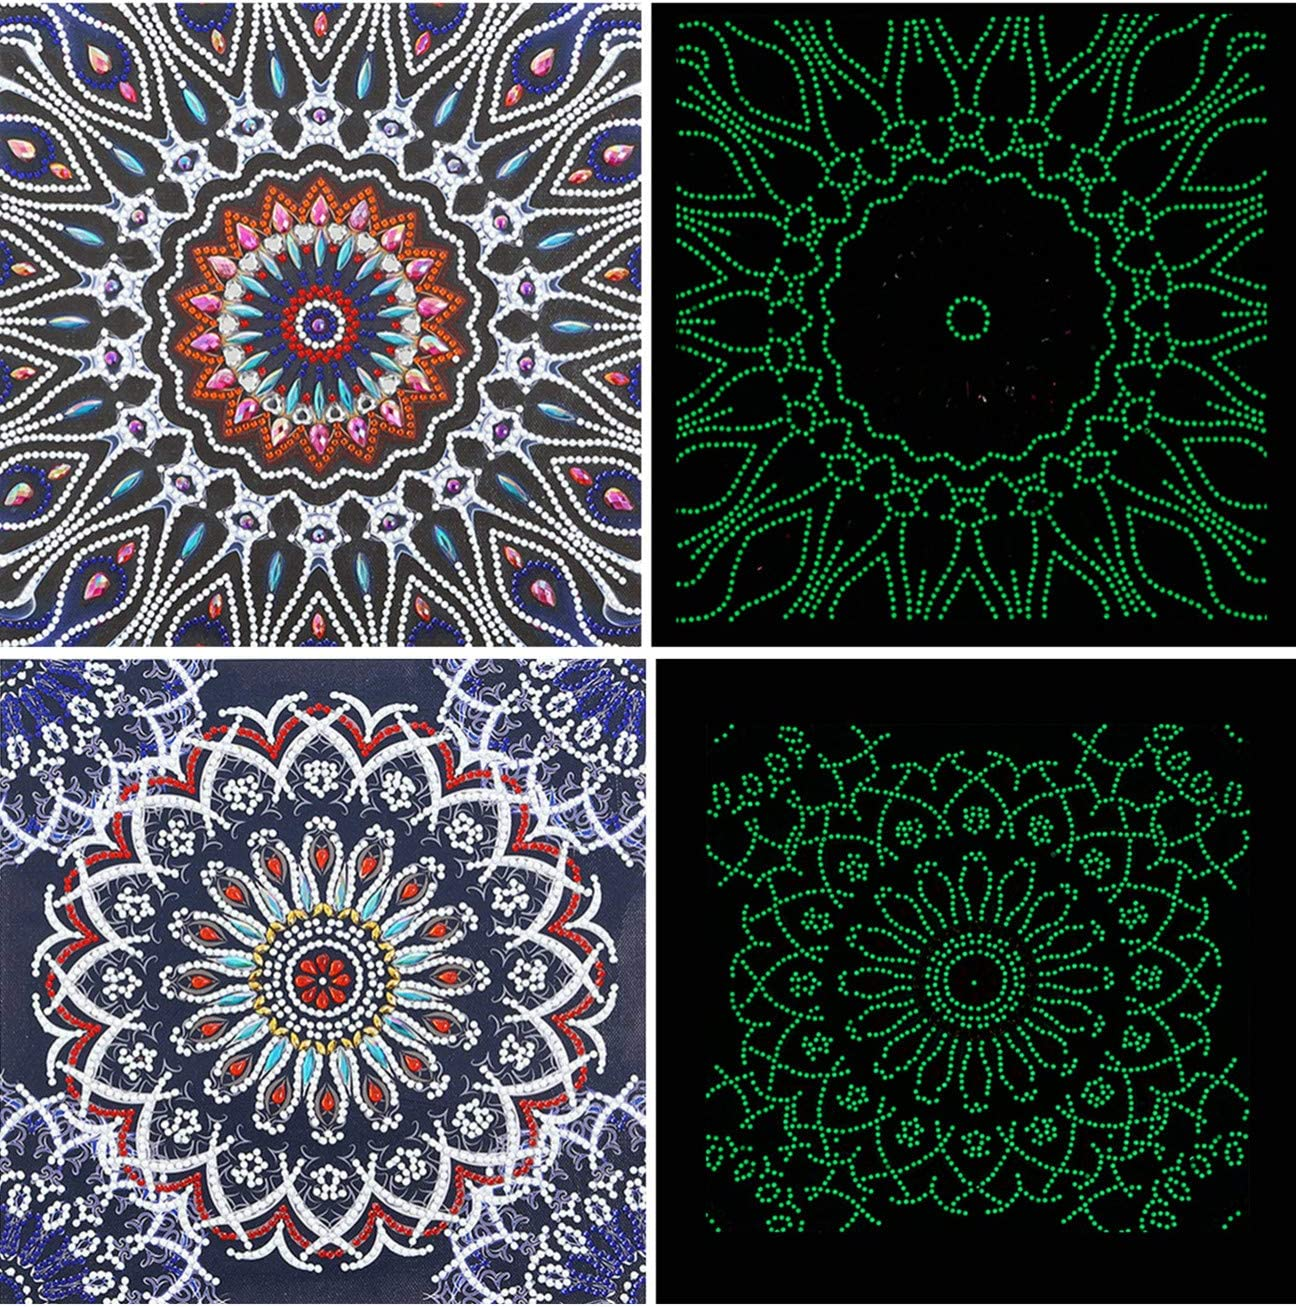 2 Pack Luminous Diamond Painting Glow in The Dark Mandala Flower 5D Diamond Painting Kits for Adults with Special Shaped Gems for Home Wall Decor,11.8 x 11.8 Inch